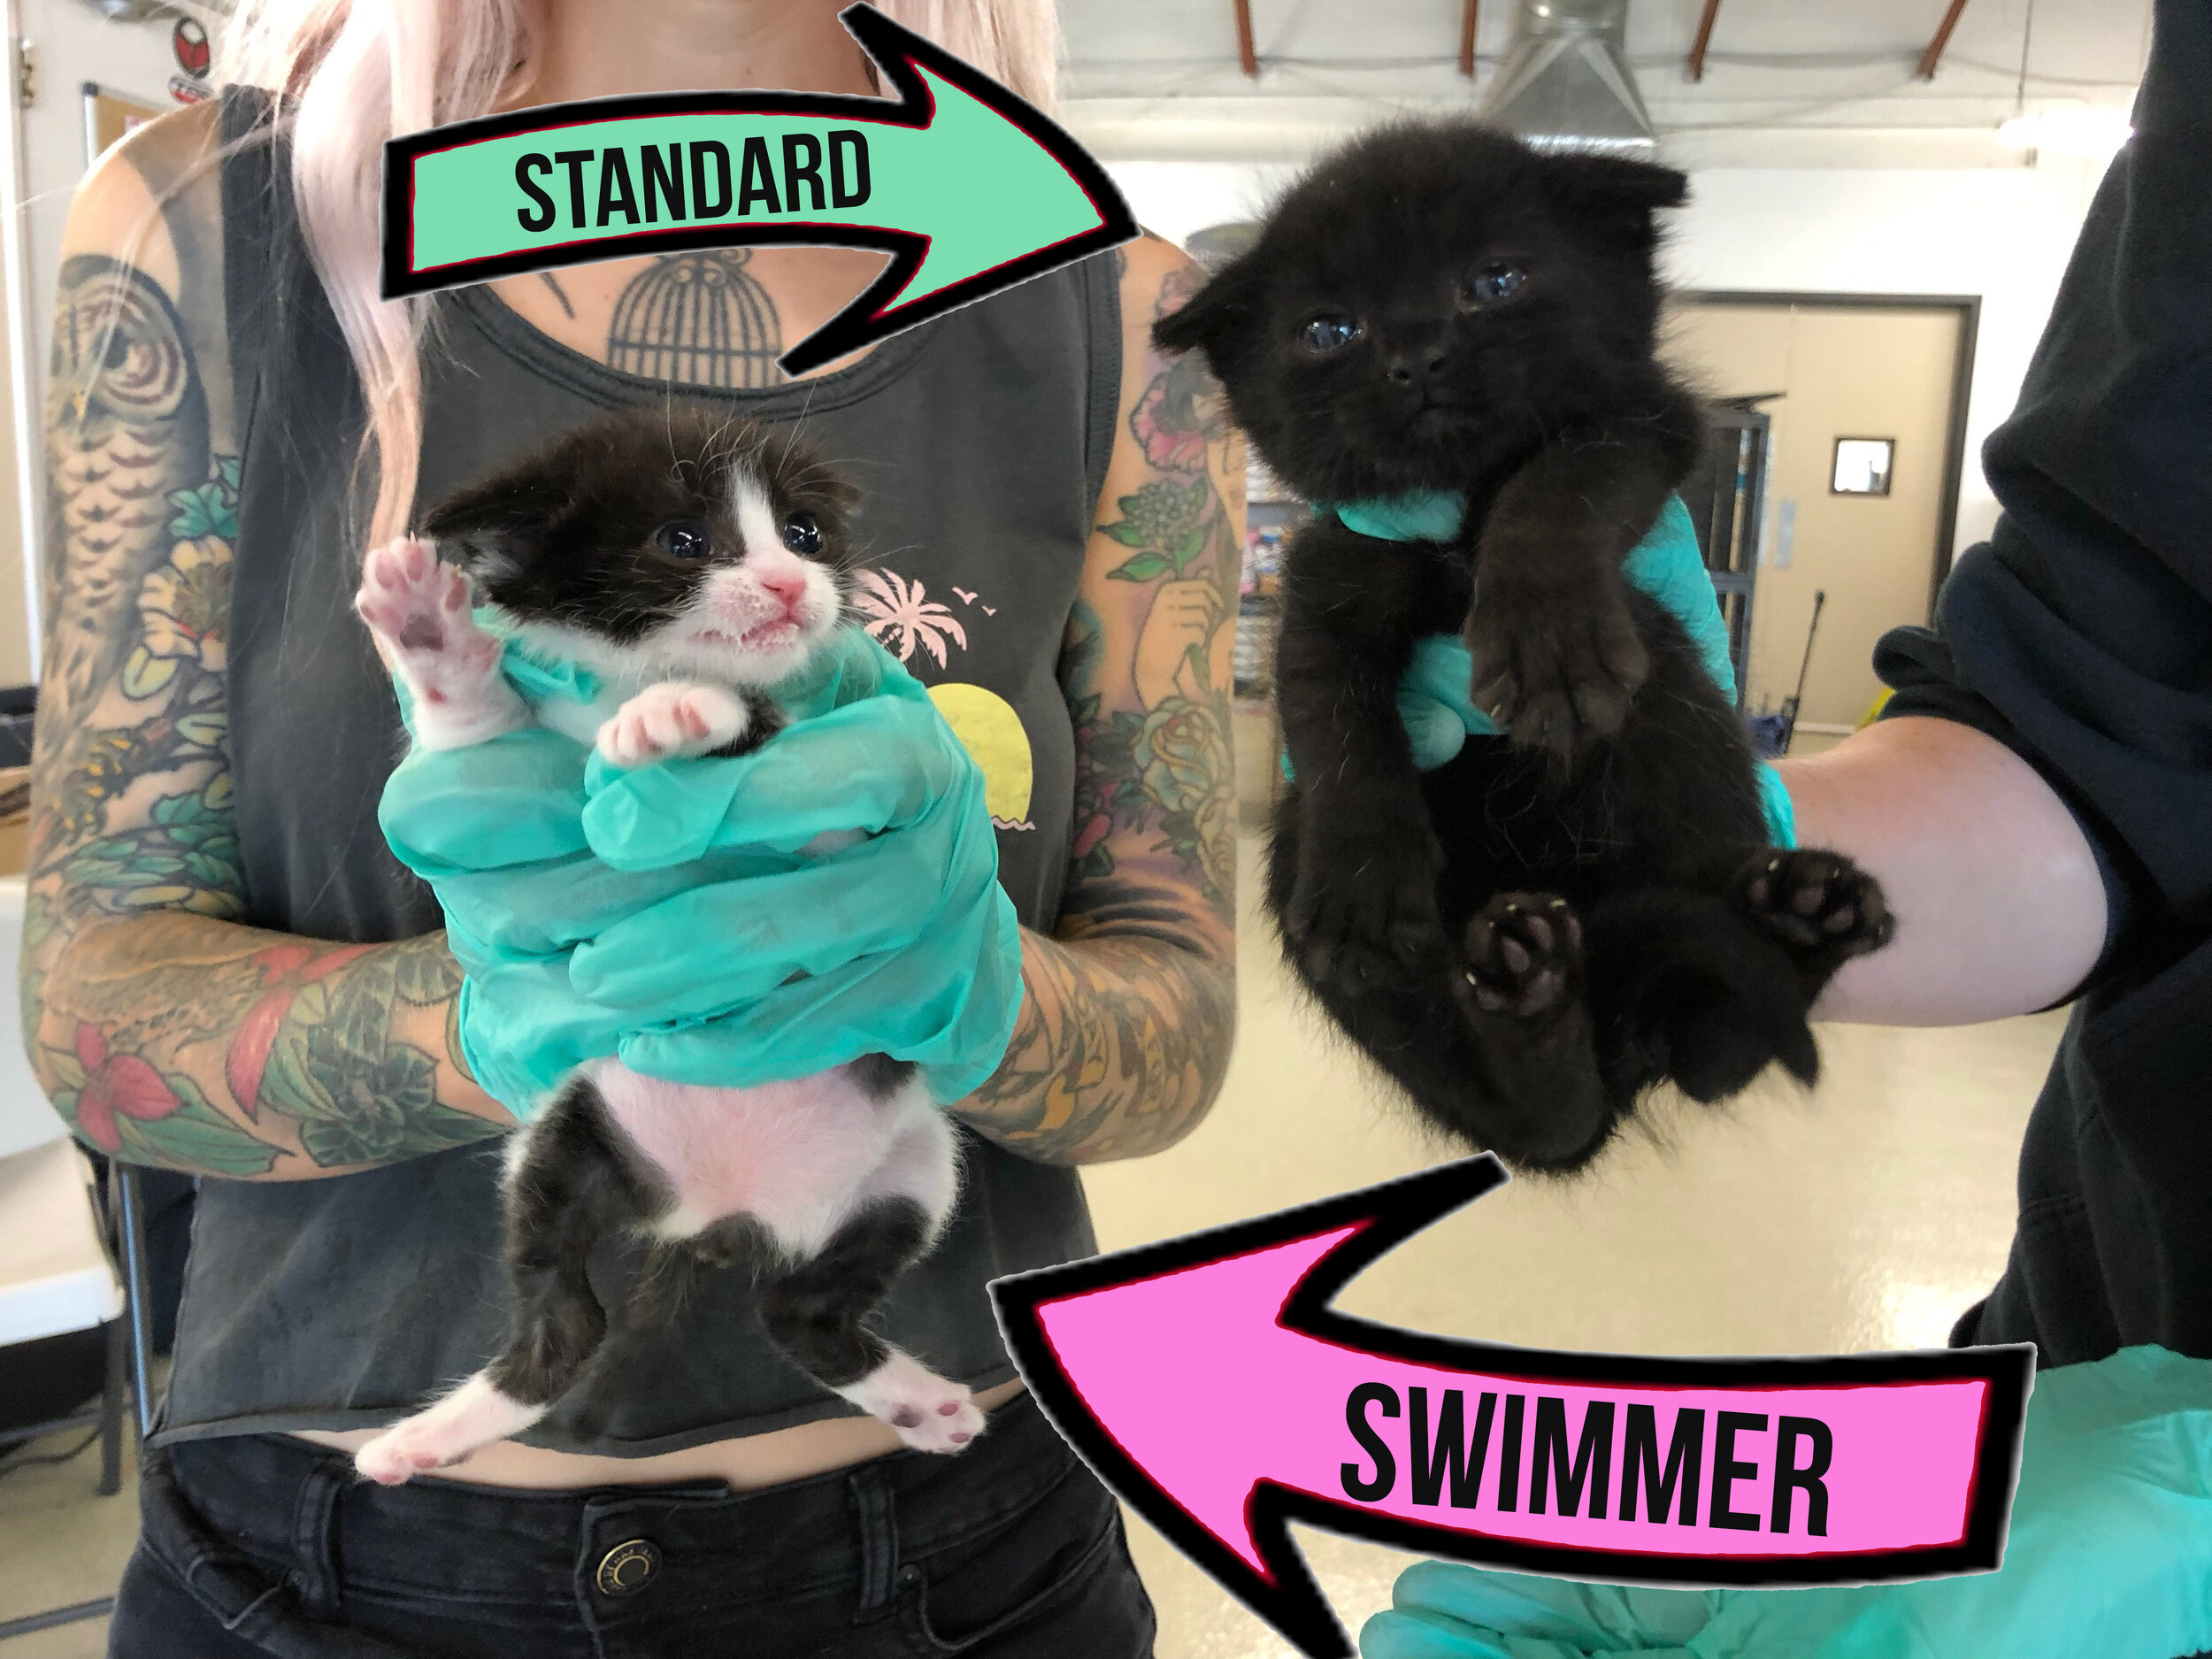 On the left, a 3 week old kitten with swimmer syndrome. On the right, a 3 week old kitten with standard leg position.